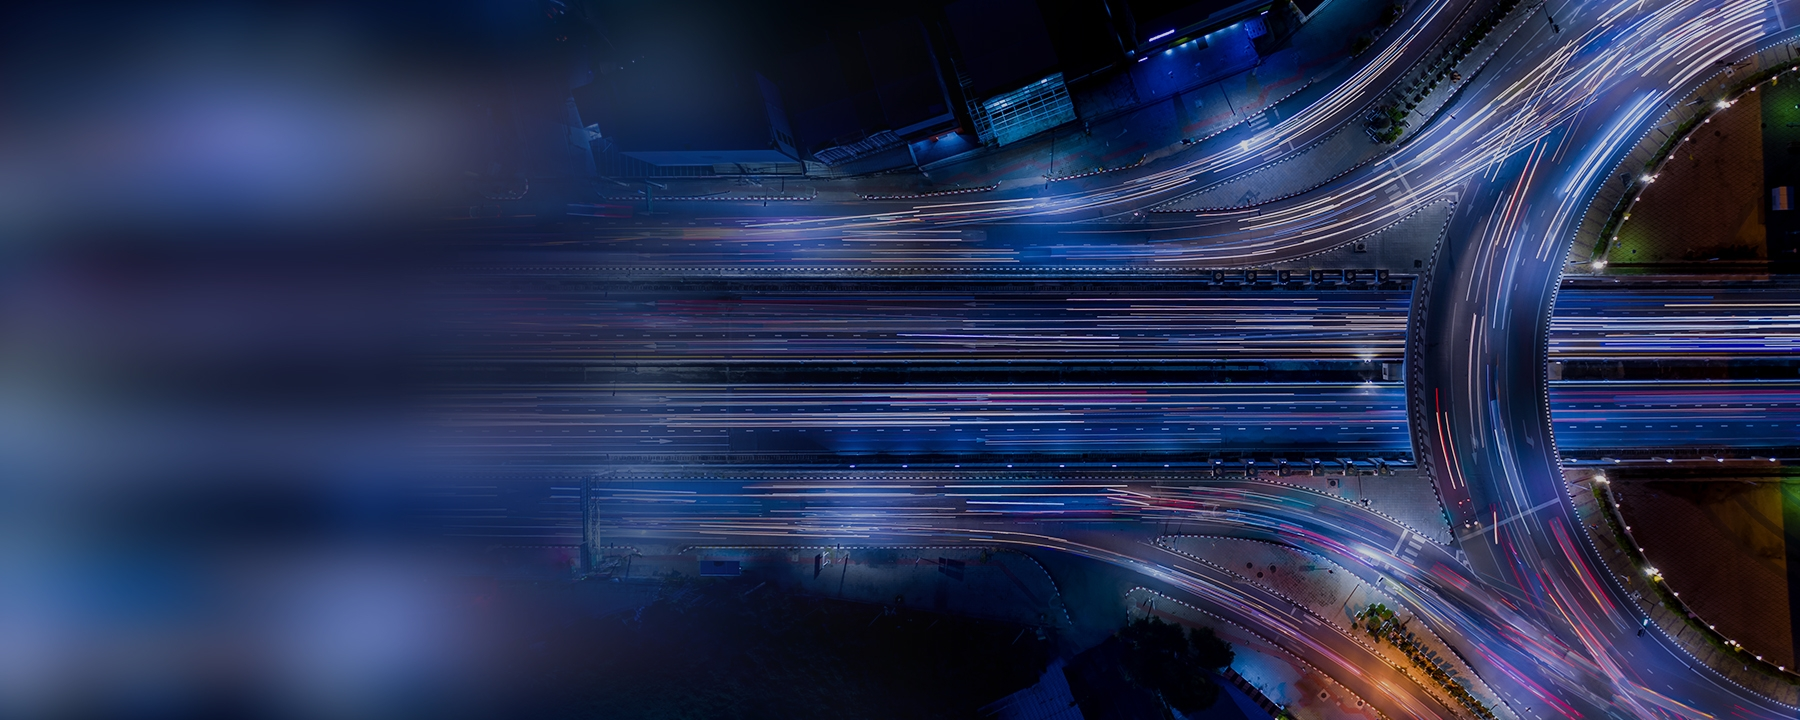 Overview of highway with motion blur